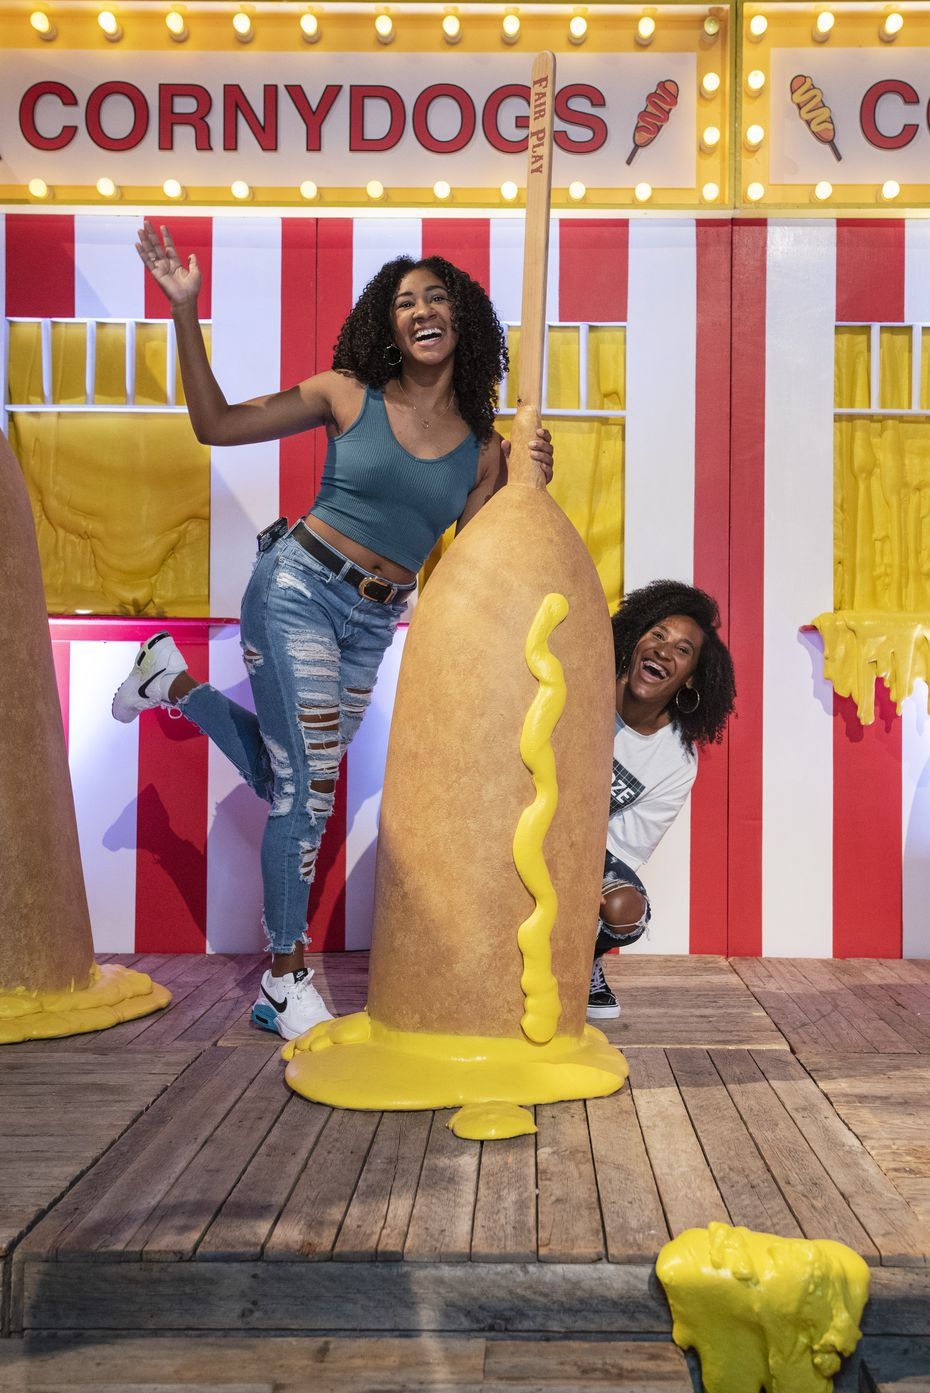 Victoria Roberts, left, and Anastatia Harrison, pose for photos with gigantic corny dogs at one of the photobooth-like displays at the State Fair themed installation titled Fair Play at The Statler in downtown Dallas.